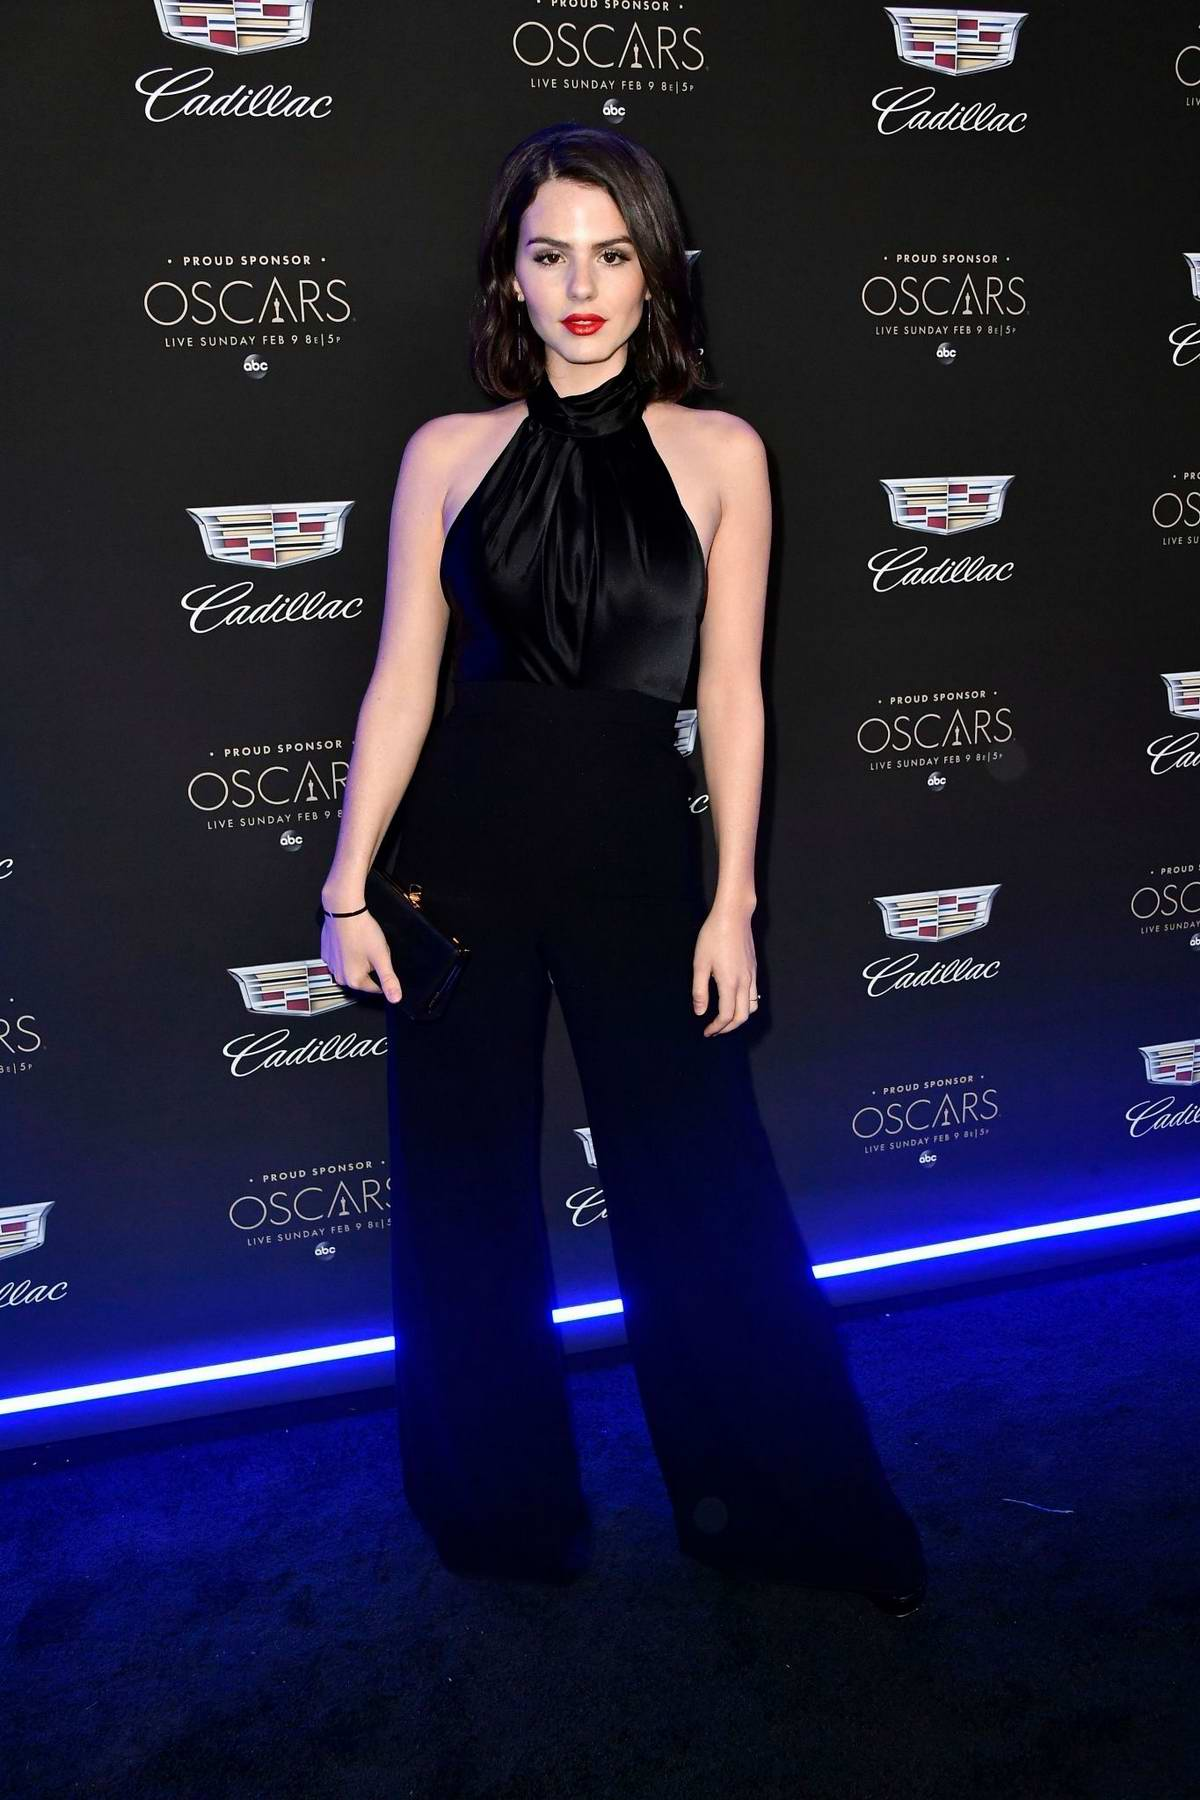 Ruby O Fee attends as Cadillac Celebrates the 92nd Annual Academy Awards in Los Angeles